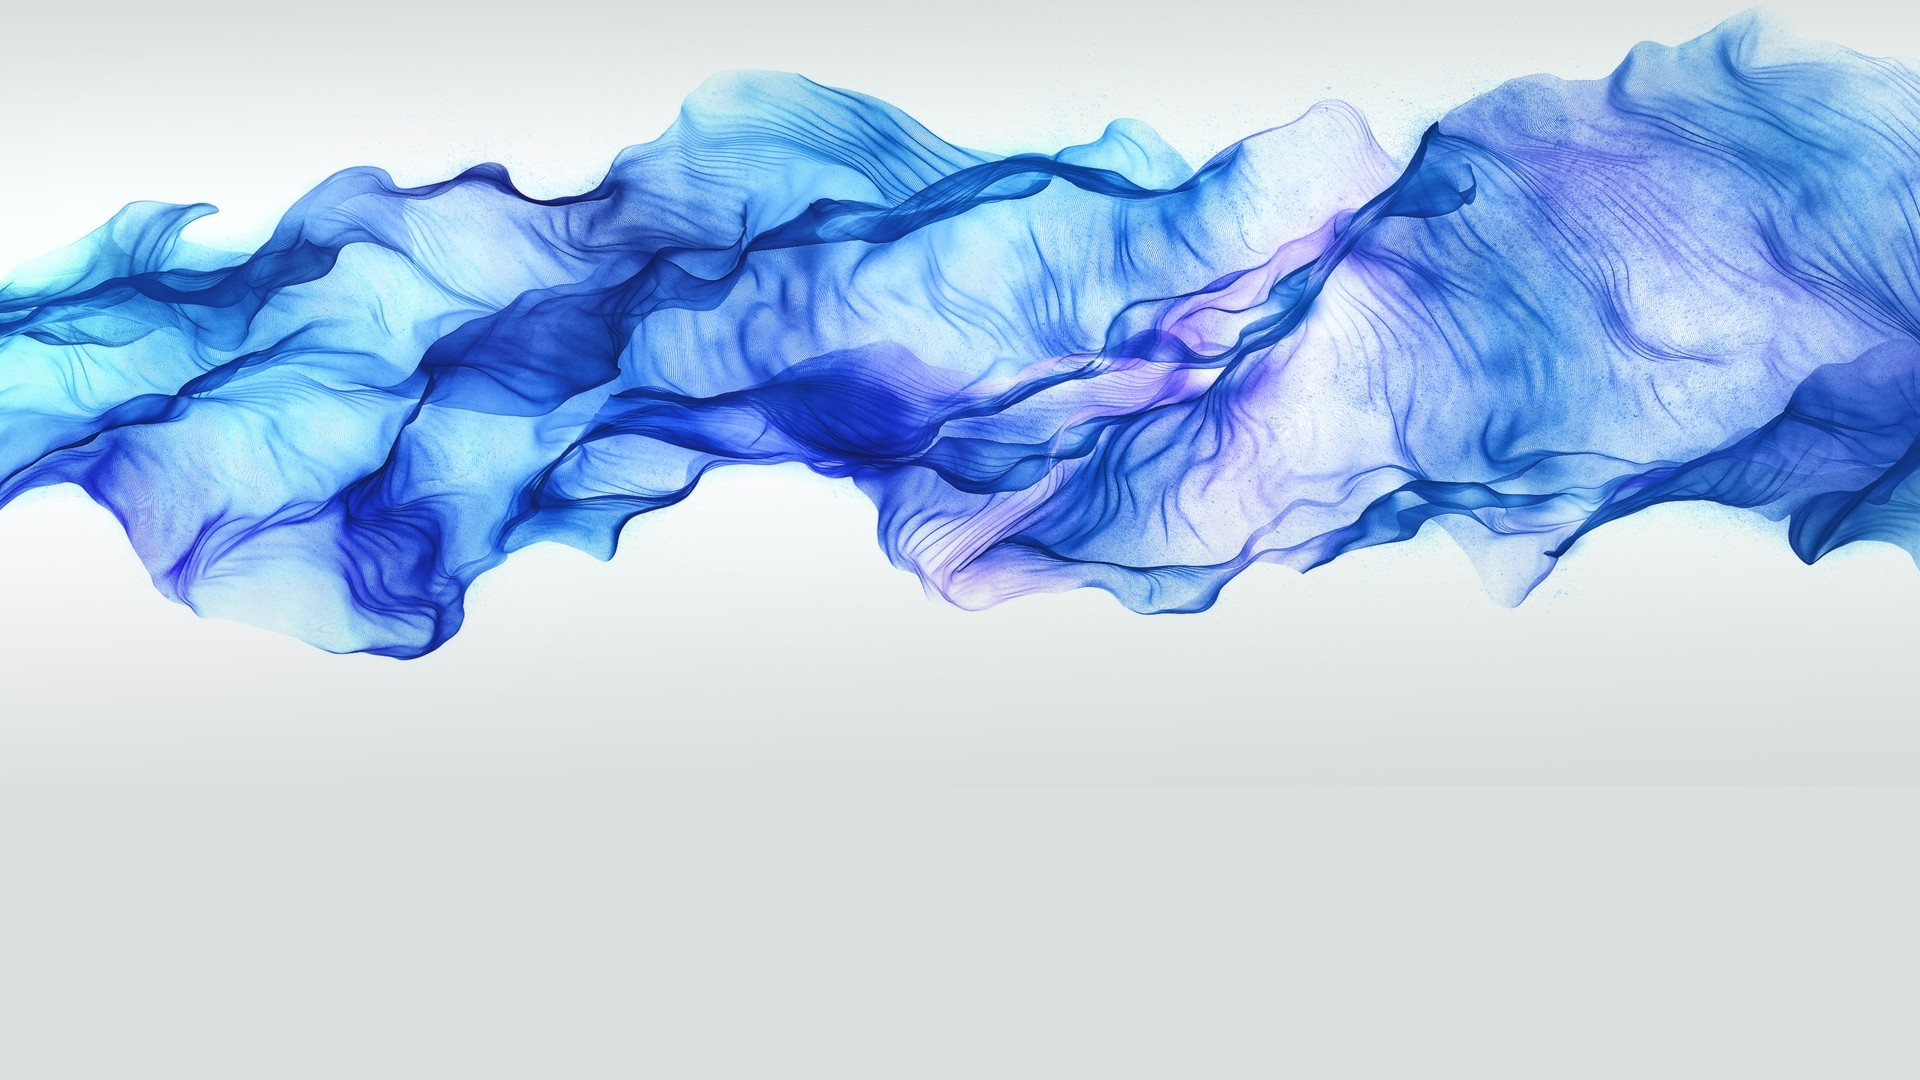 hd blue abstract wallpapers 1080p